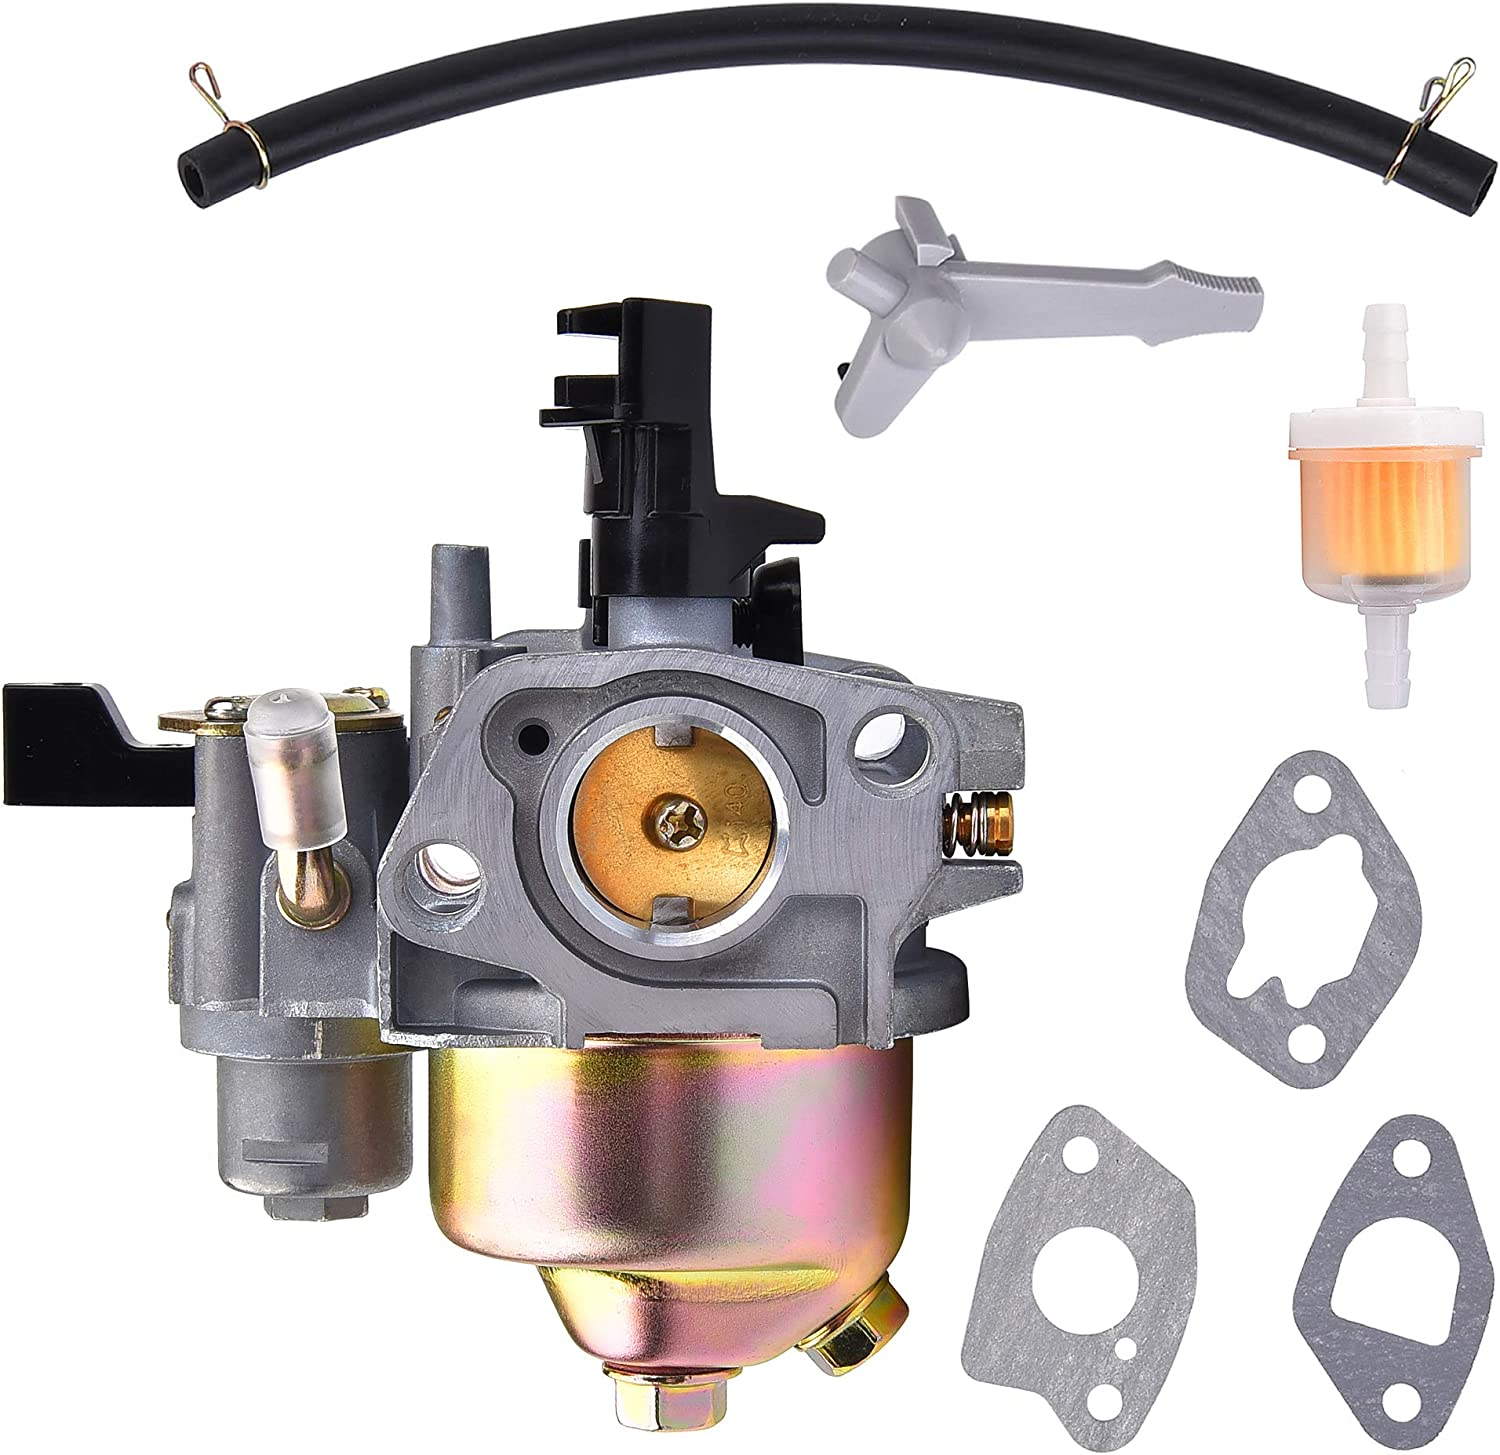 Carburetor with Gasket Set Replacement for Coleman Powersports CT200U KT196 196cc 5.5HP 6.5HP OHV Engine Go Kart Carb